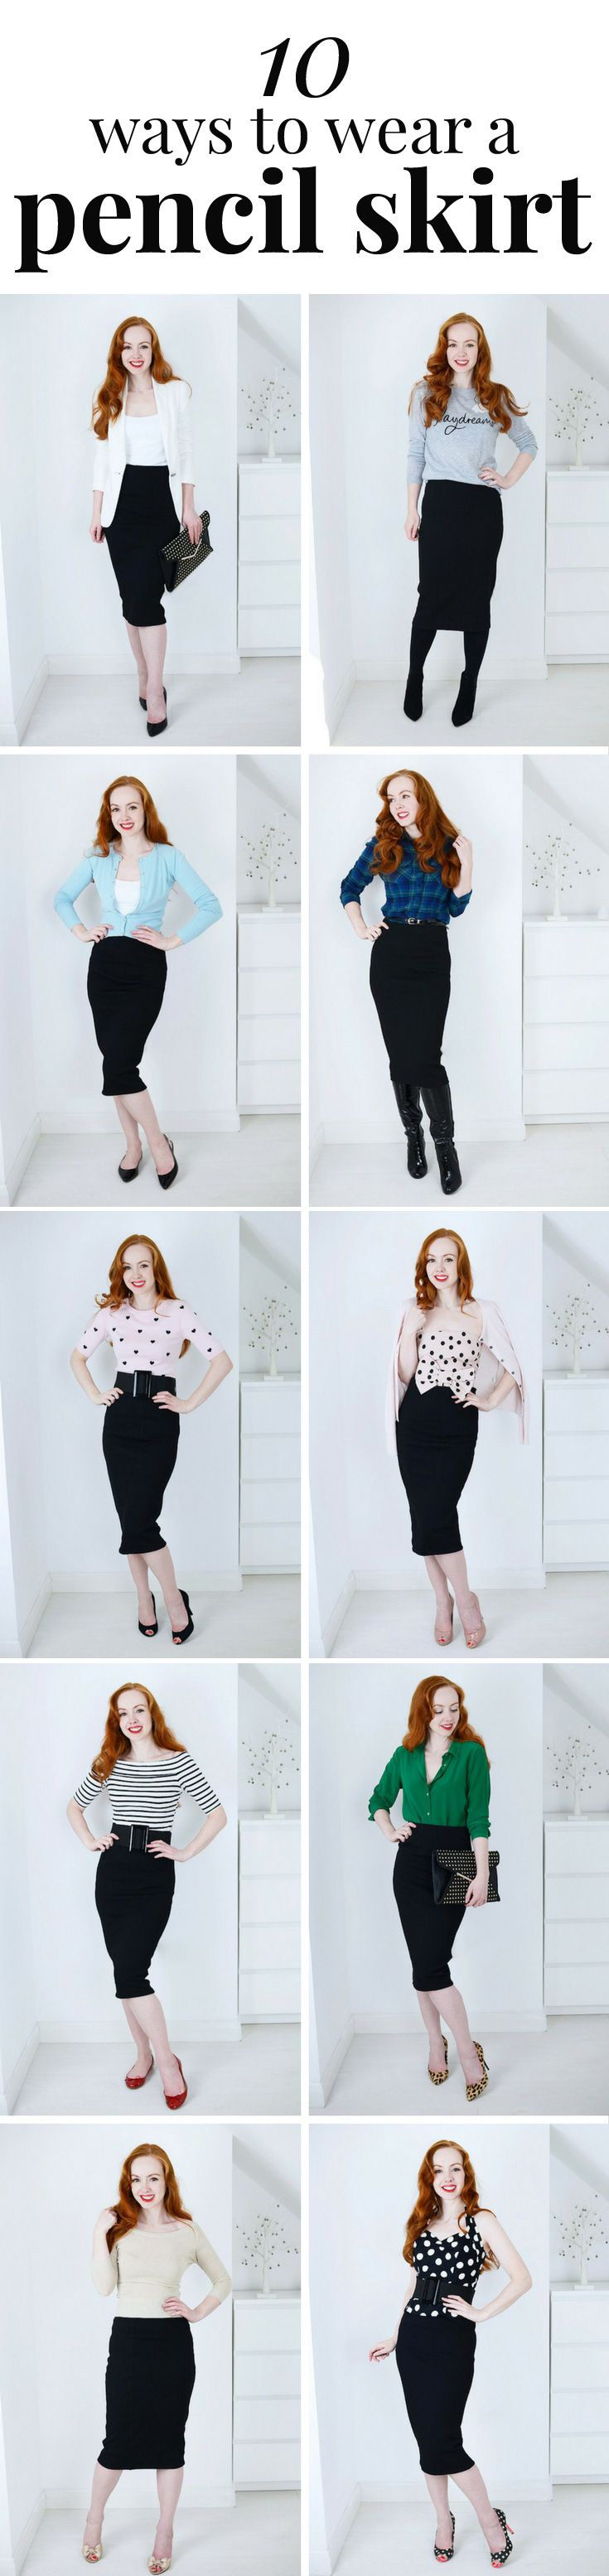 b9e1945416 10 ways to wear a pencil skirt ~ it's kind of a midi skirt...! I love pencil  skirts so I find this picrure to be really useful advice ☺